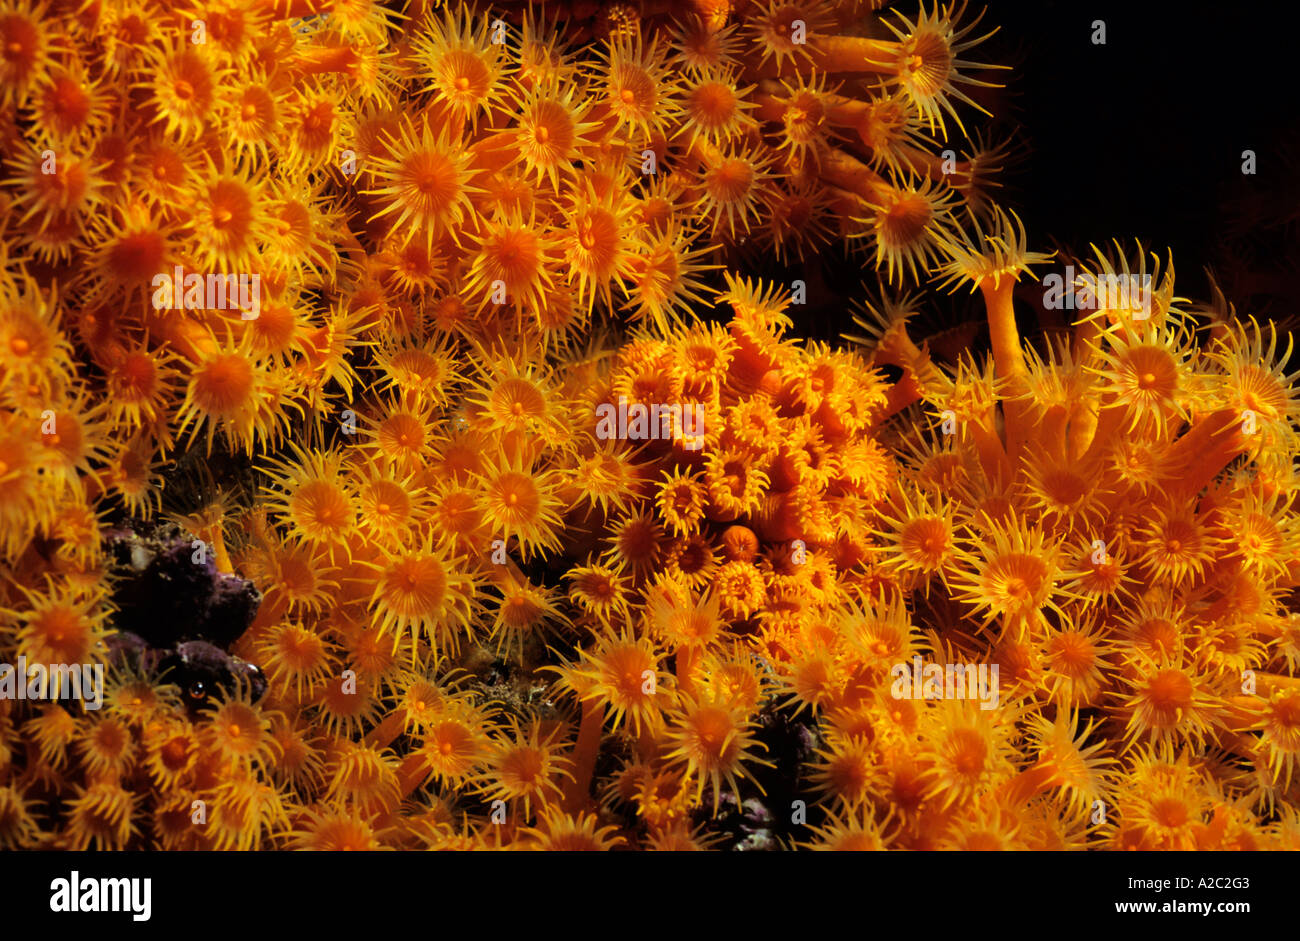 Sea Anemones - Brightly colored Yellow Encrusting Anemone (Parazoanthus axinellae). Stock Photo